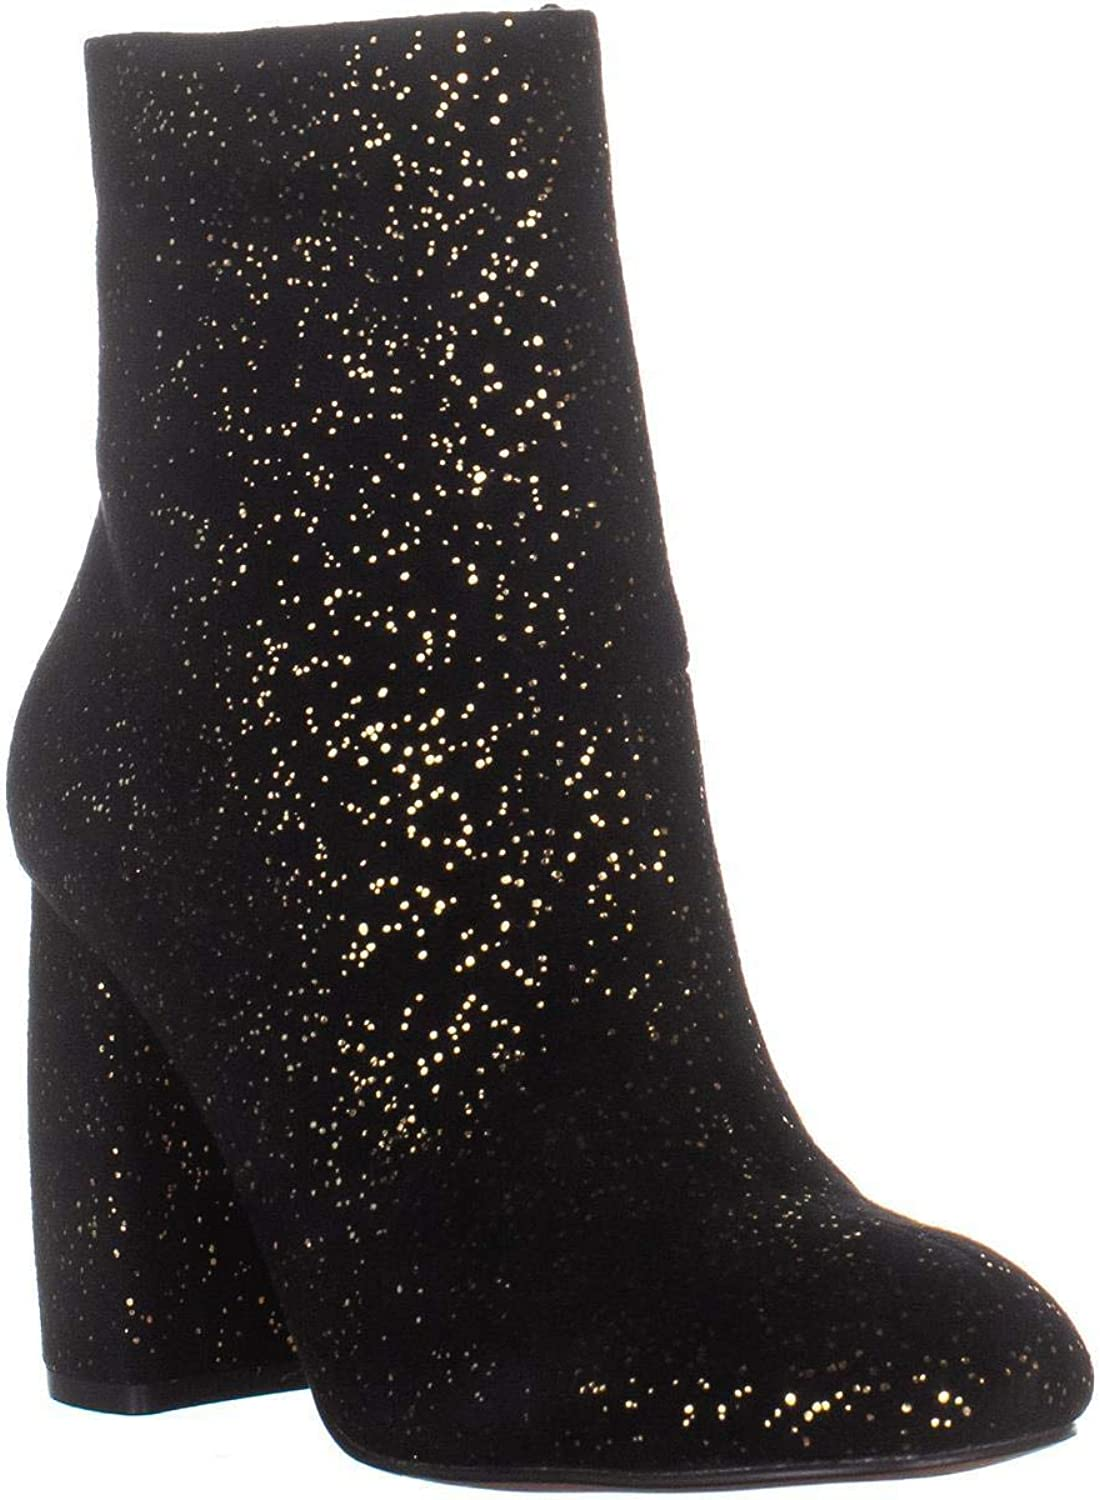 Nanette Lepore Lilly Akle Boots, Black